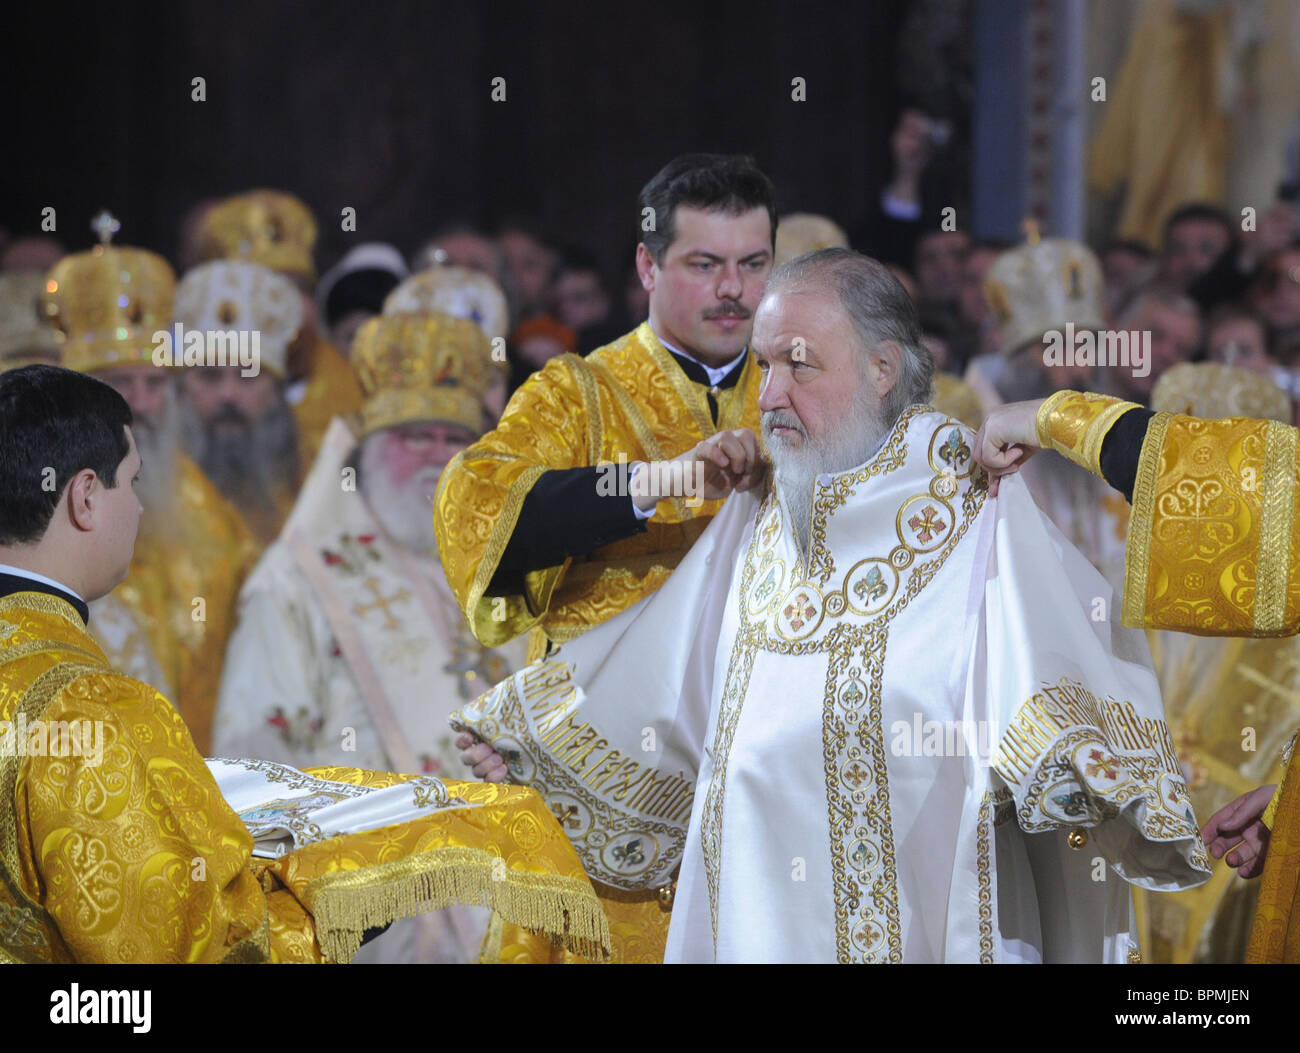 Metropolitan Kirill enthroned as 16th Patriarch of Russian Orthodox Church - Stock Image